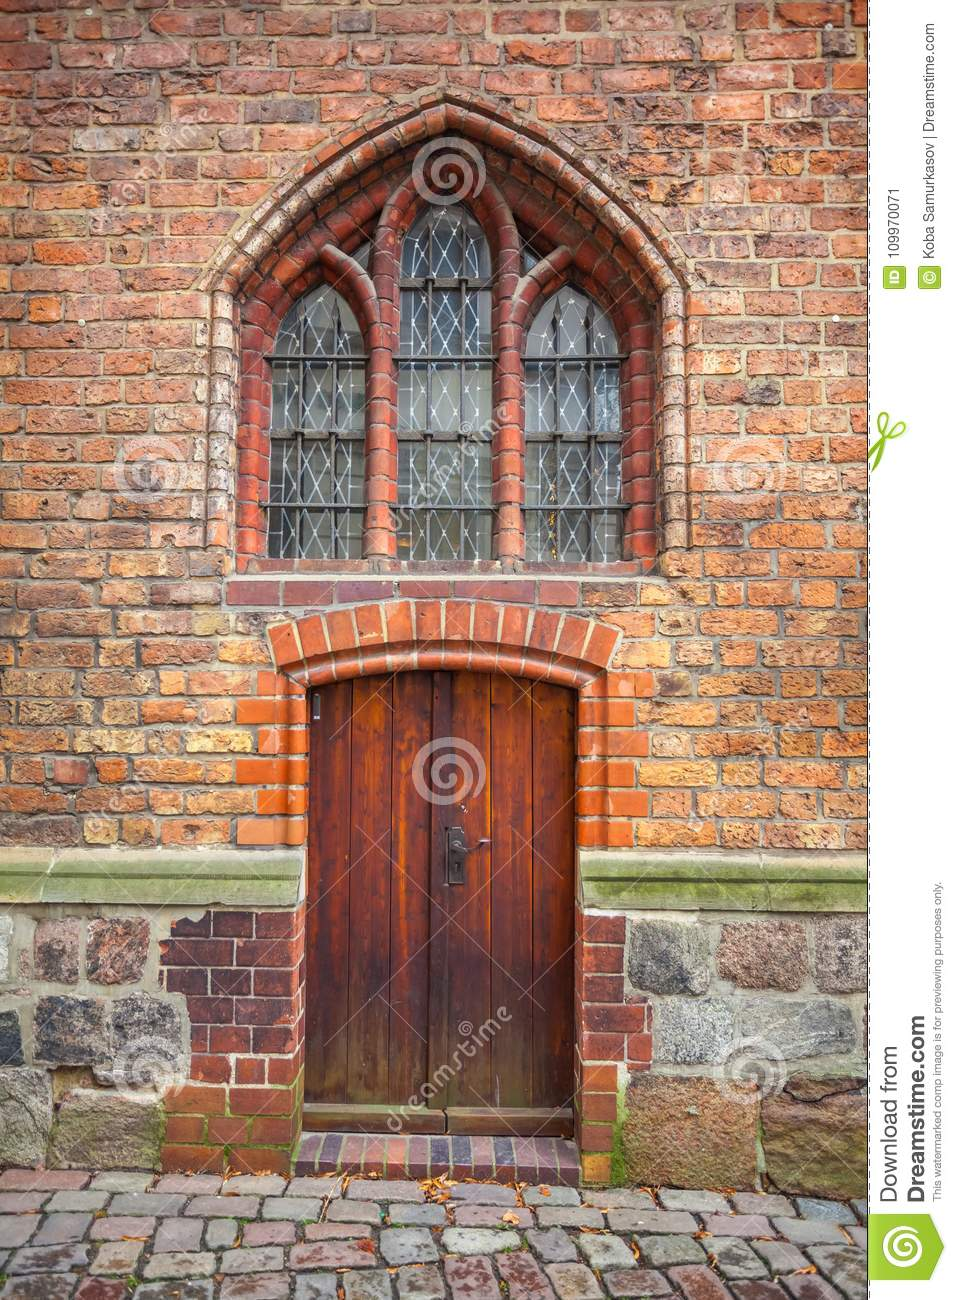 Berlin Gothic Door Of A Brick Gothic Building In Berlin Germany Stock Image